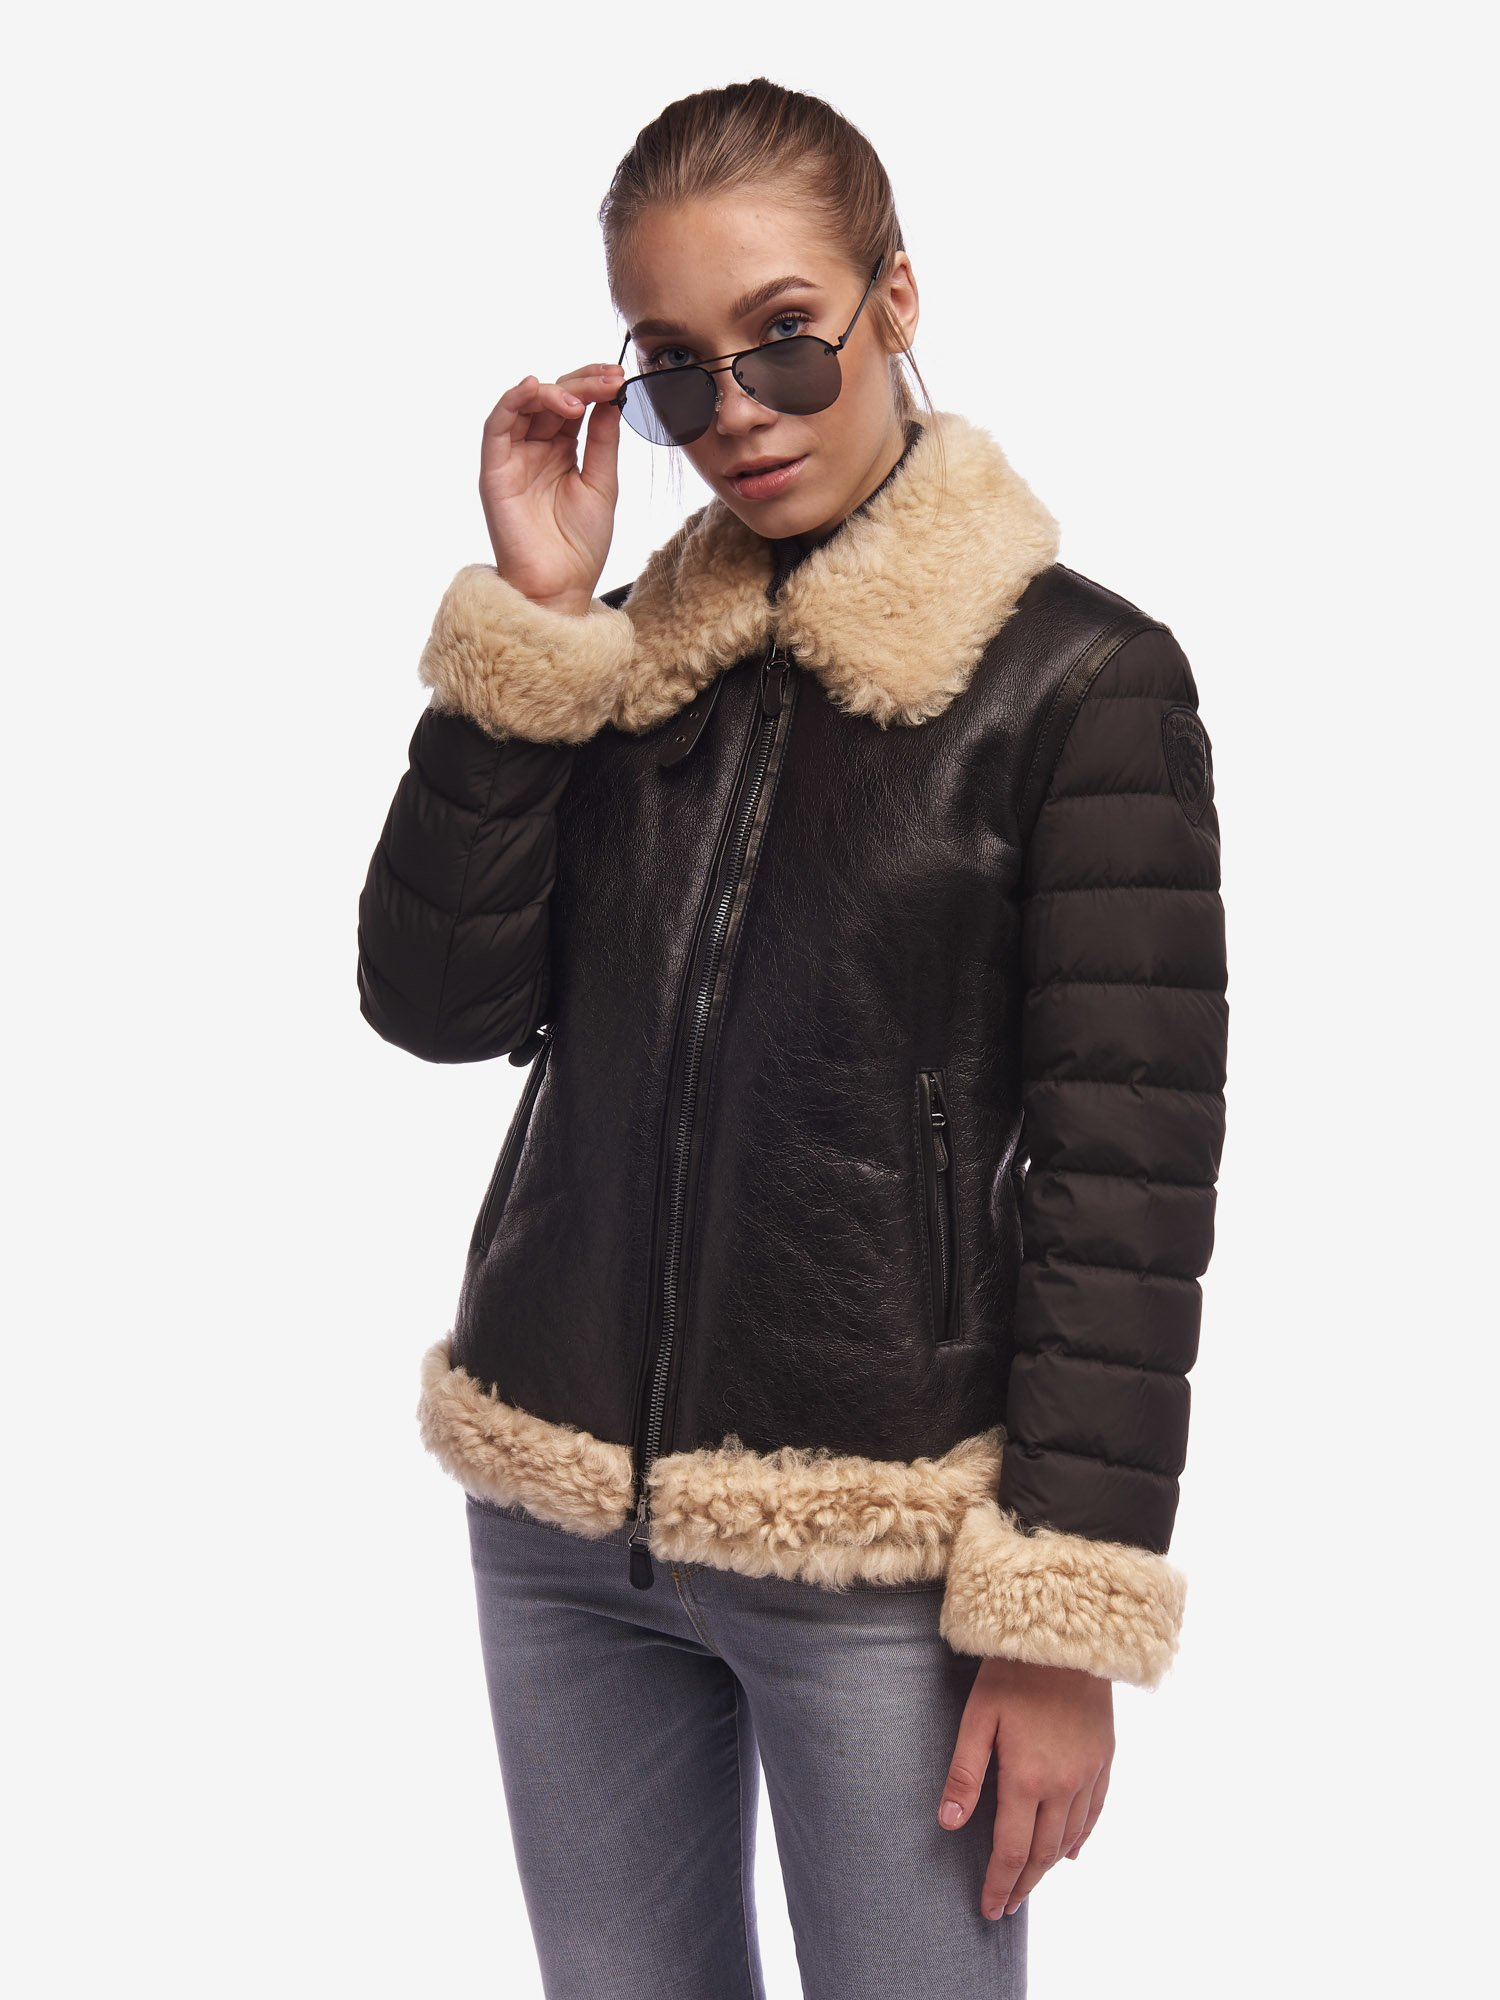 LEE VINTAGE SHEARLING LEATHER AND NYLON JACKET - Blauer